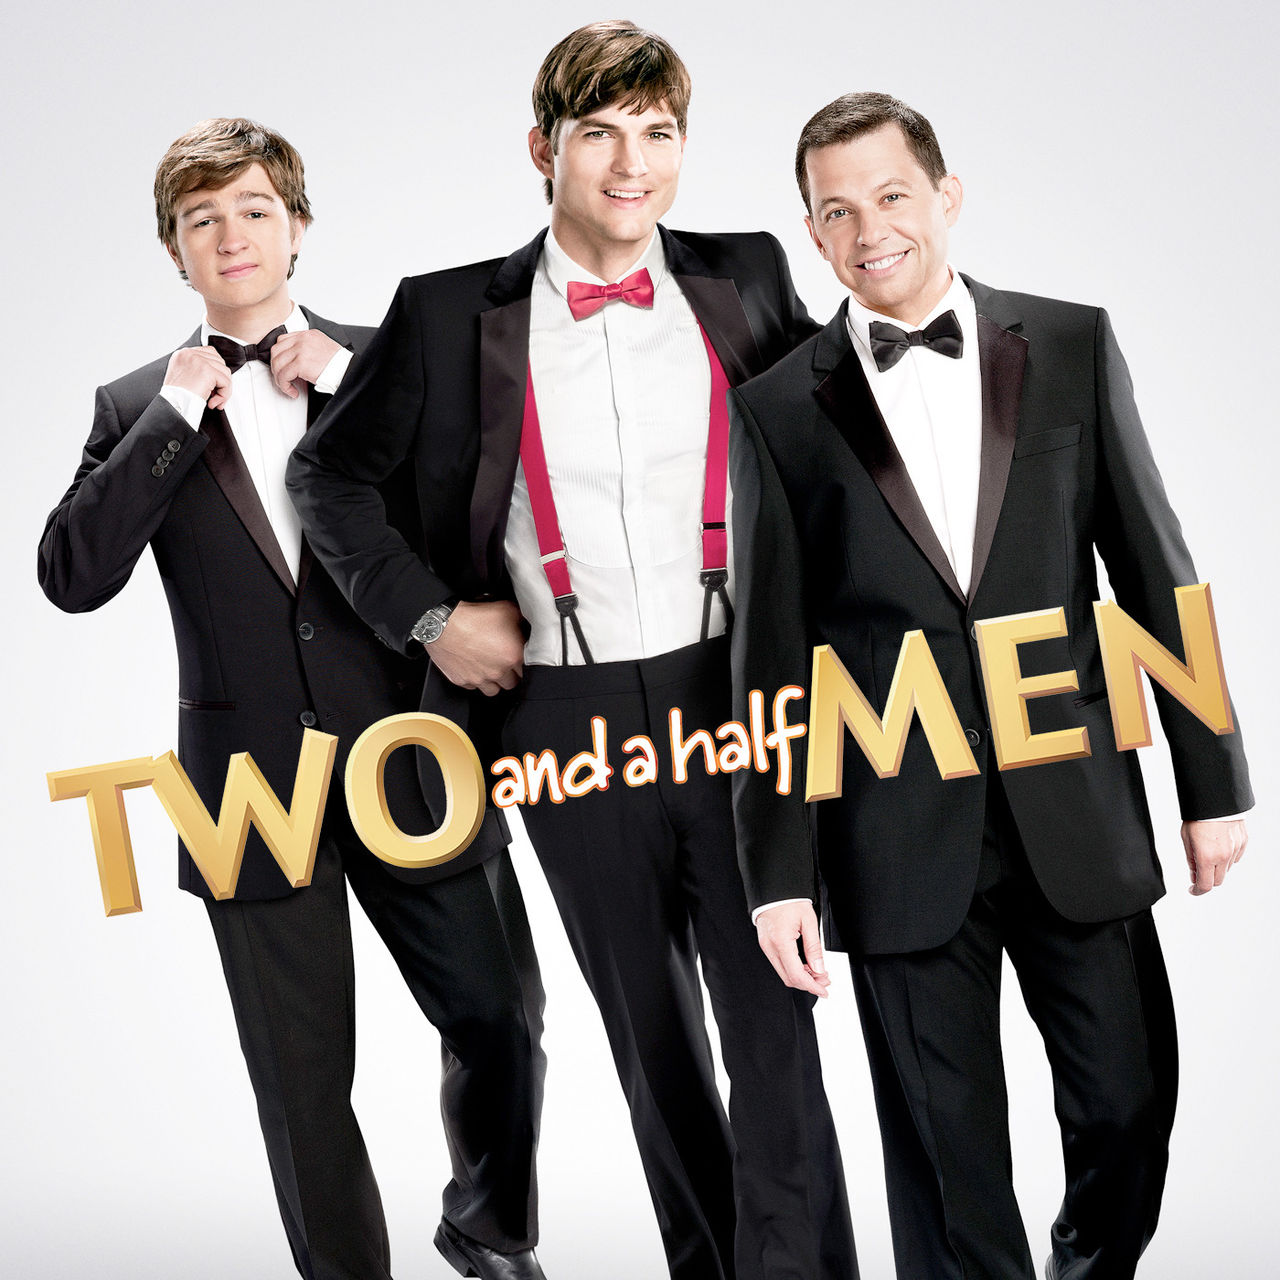 Hejdå Two and a half men